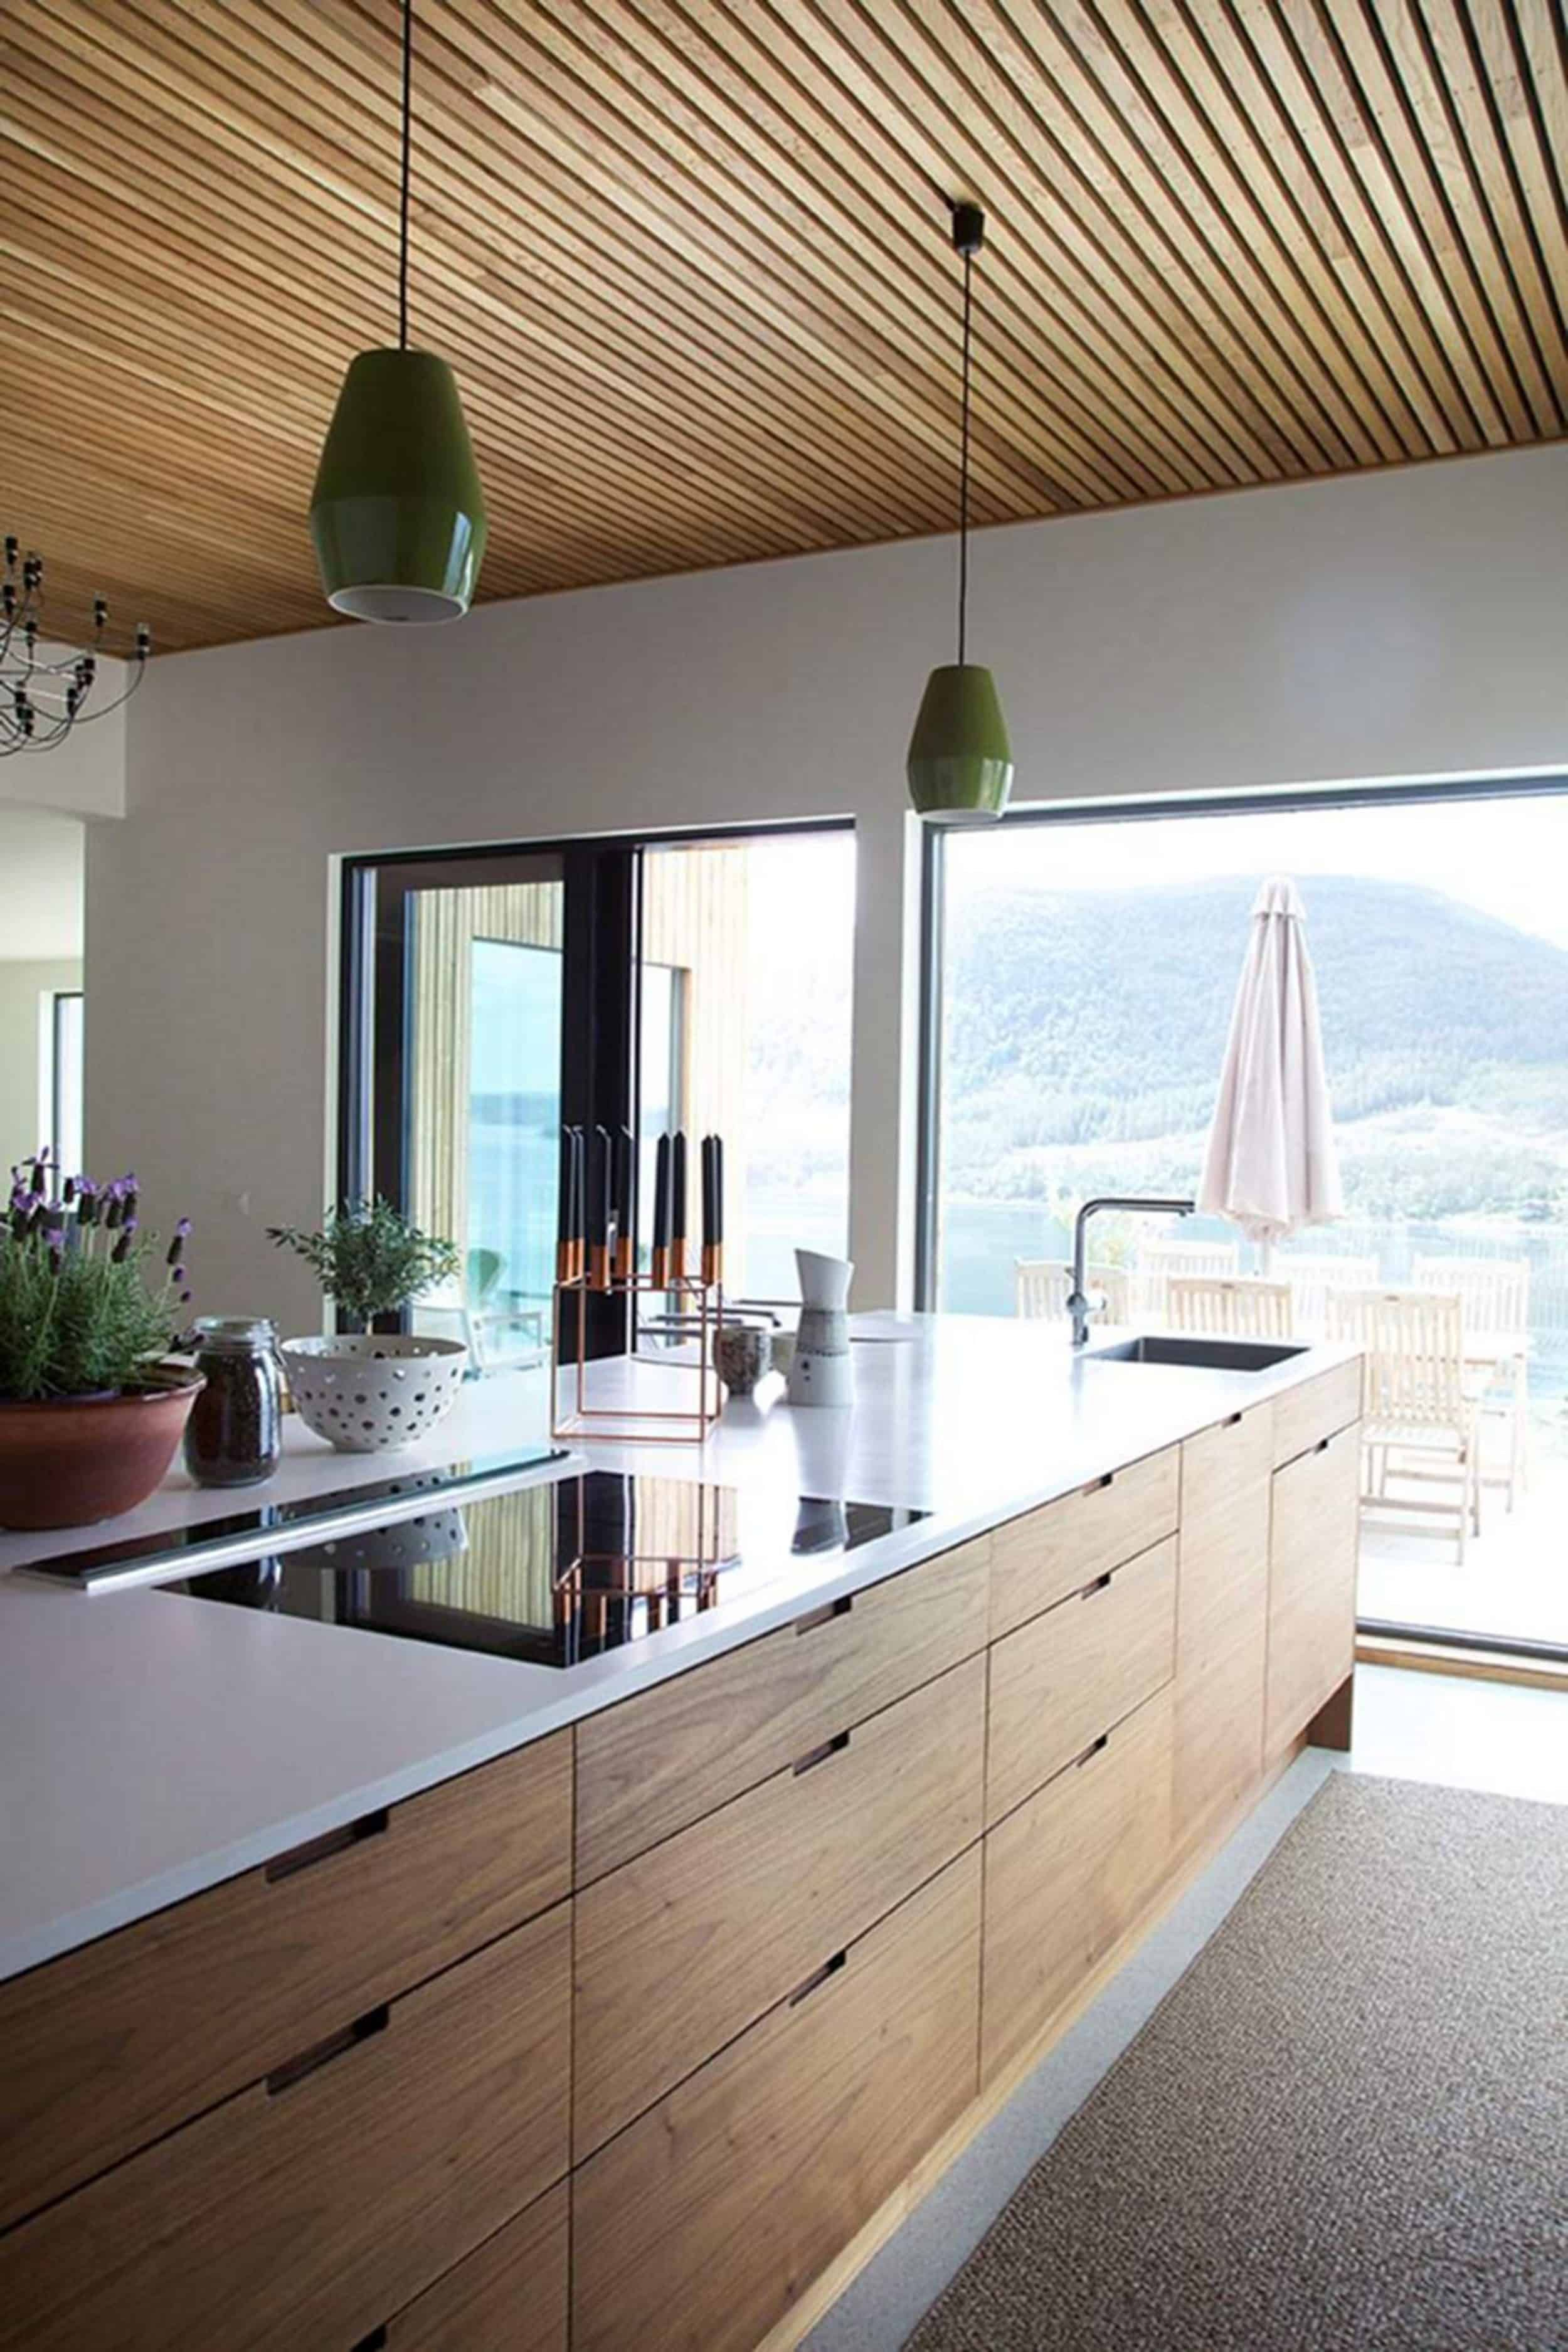 Is No Hardware The New Hardware Trend For Kitchens In 2020 Modern Kitchen Design Modern Kitchen Cabinet Design Mid Century Modern Kitchen Cabinets